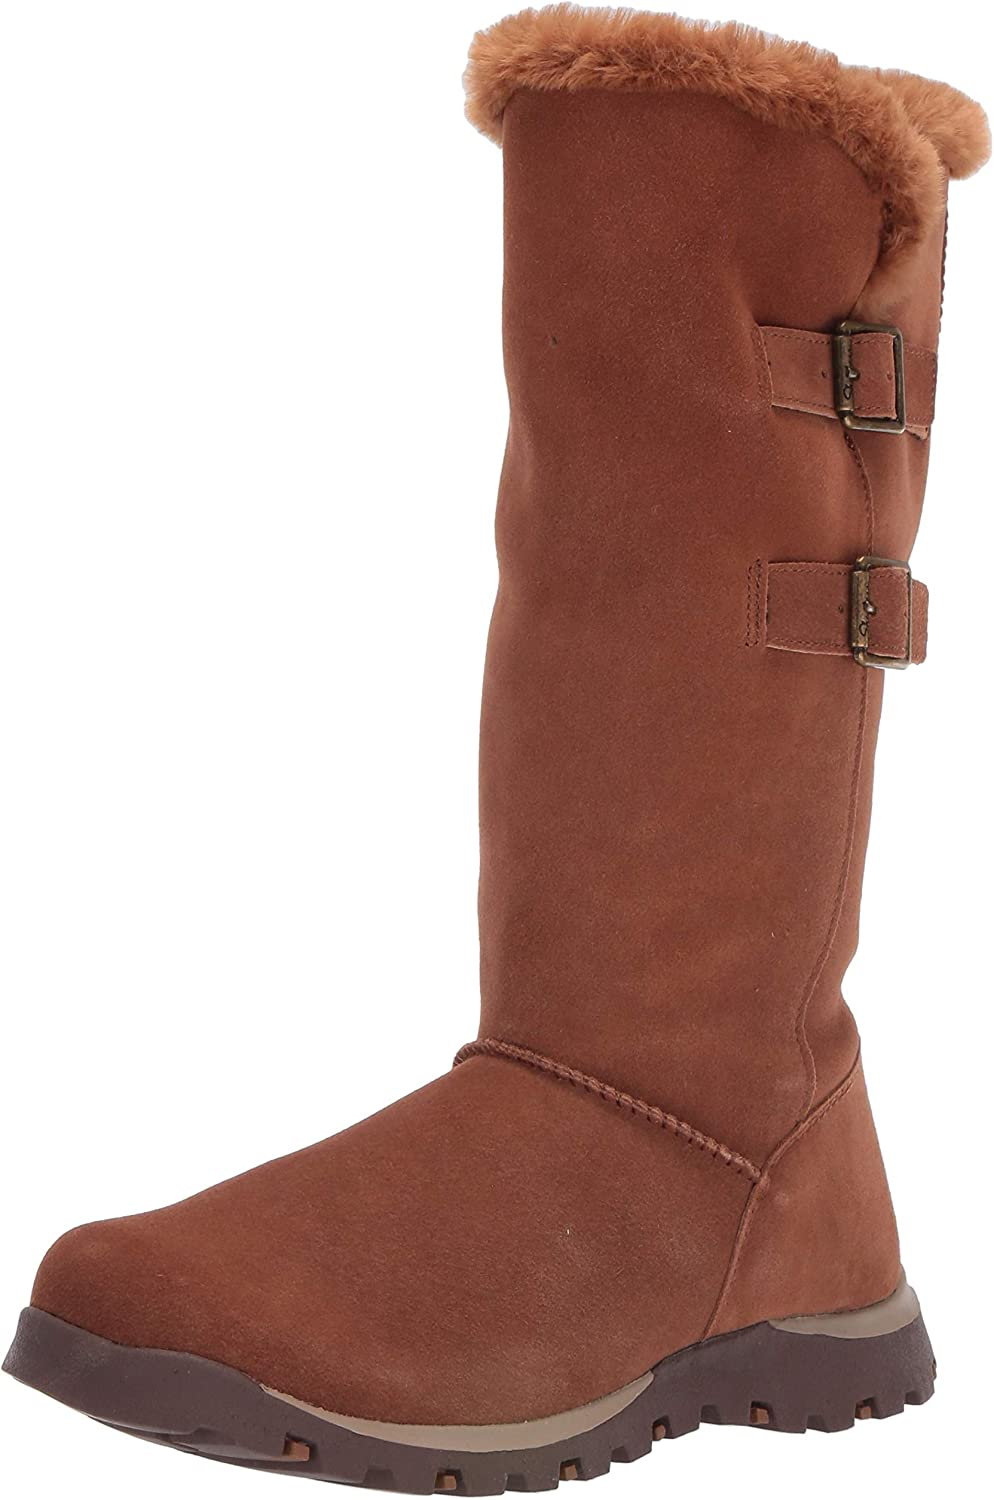 Skechers Women's Ultra-Cheap Deals Grand Indefinitely Jams-Tall Double Buckle Fu Boot with Faux